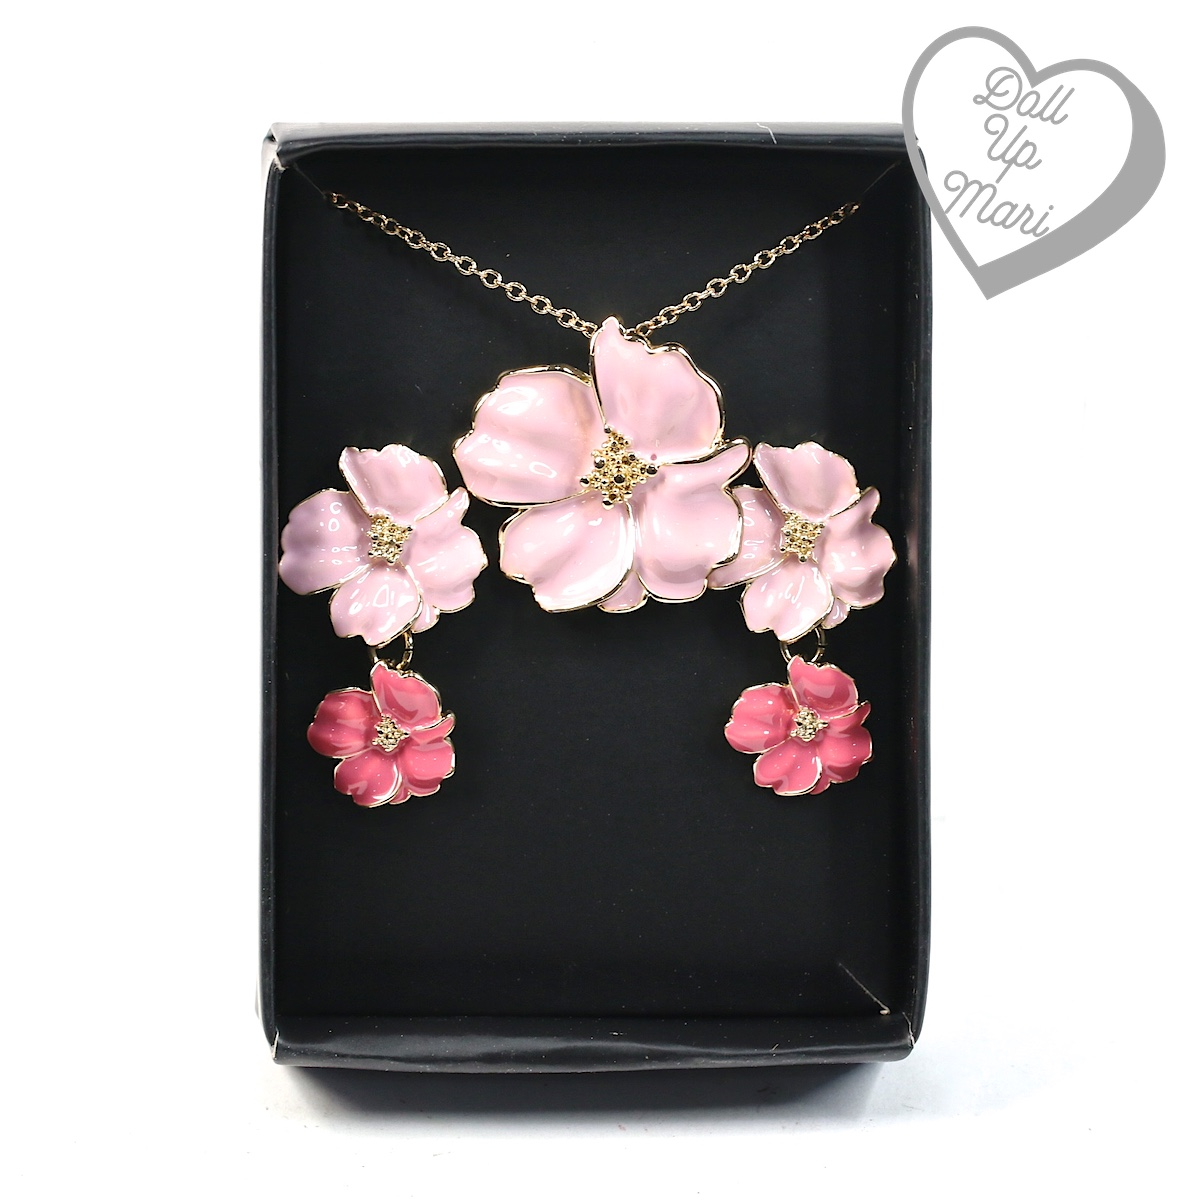 AVON Maxene Floral Statement Necklace and Earring Gift Set